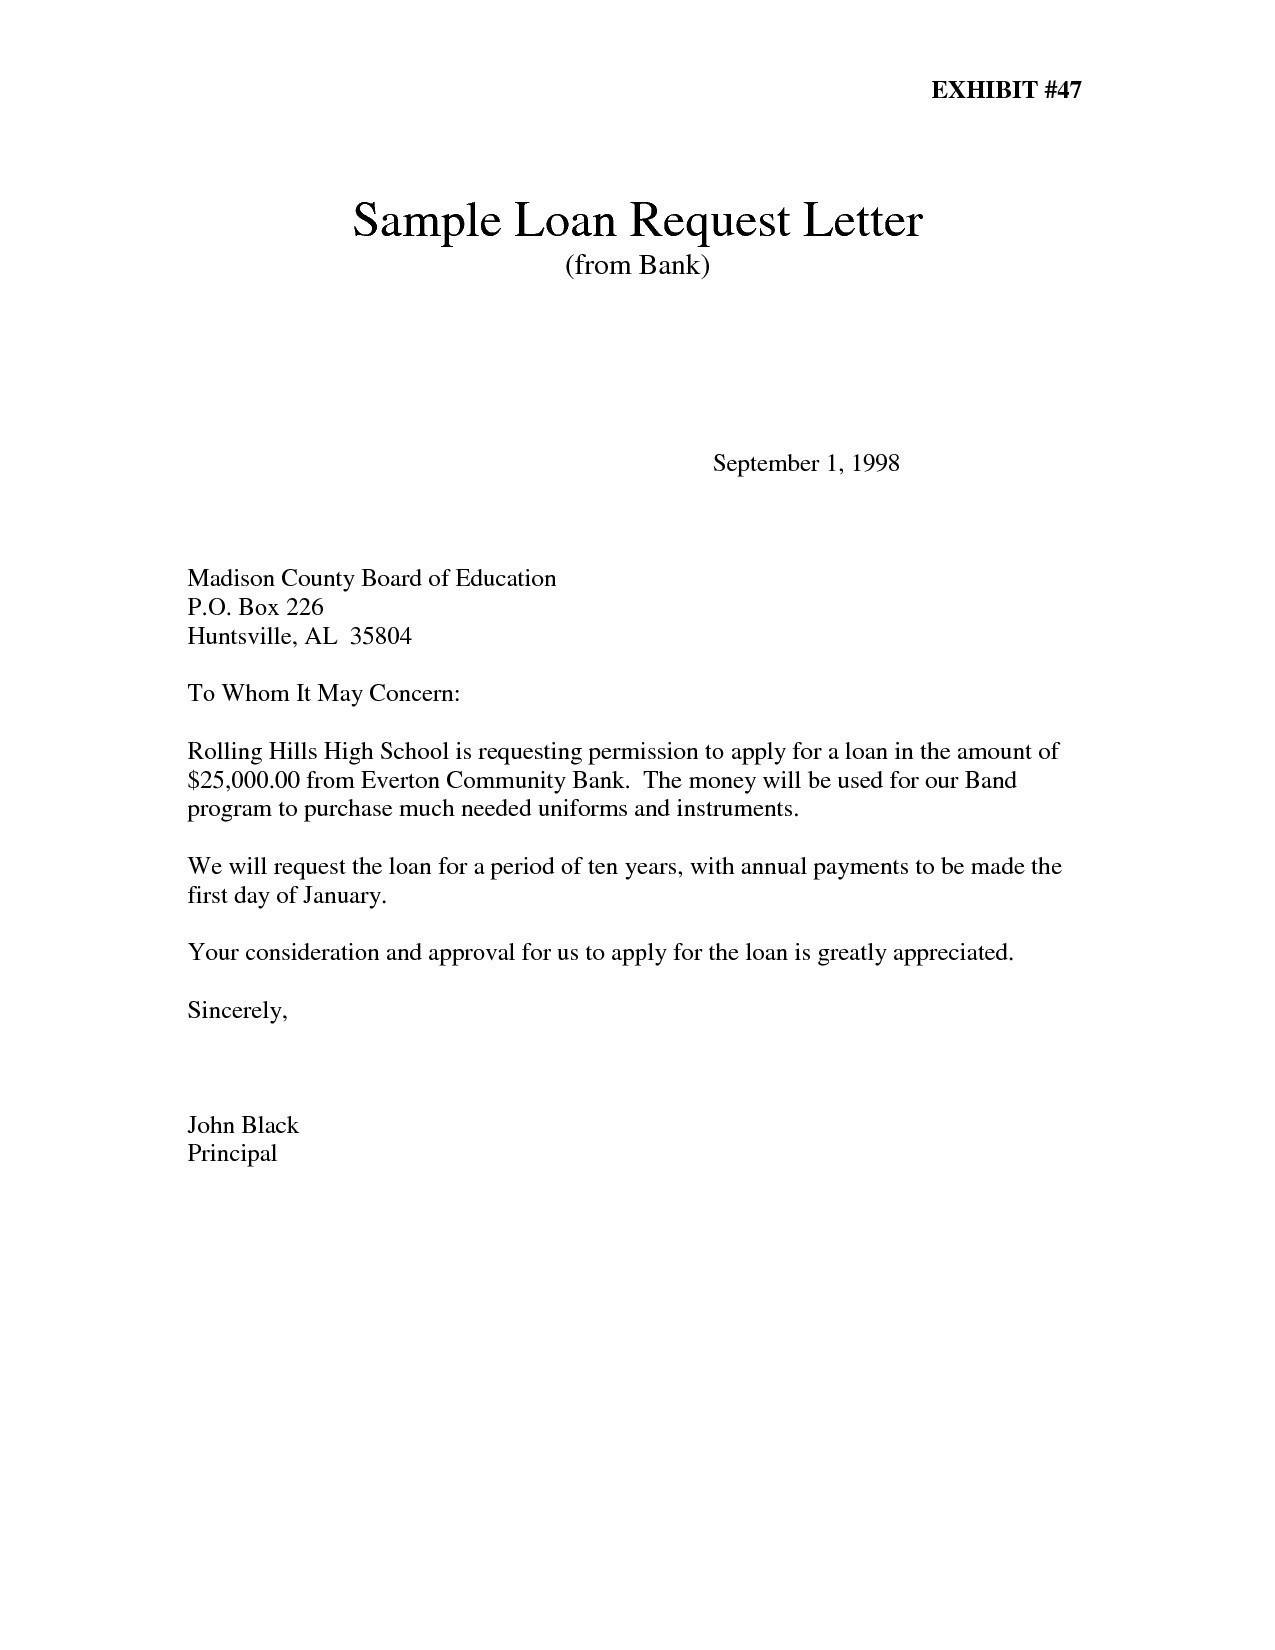 Personal Loan Repayment Letter Template